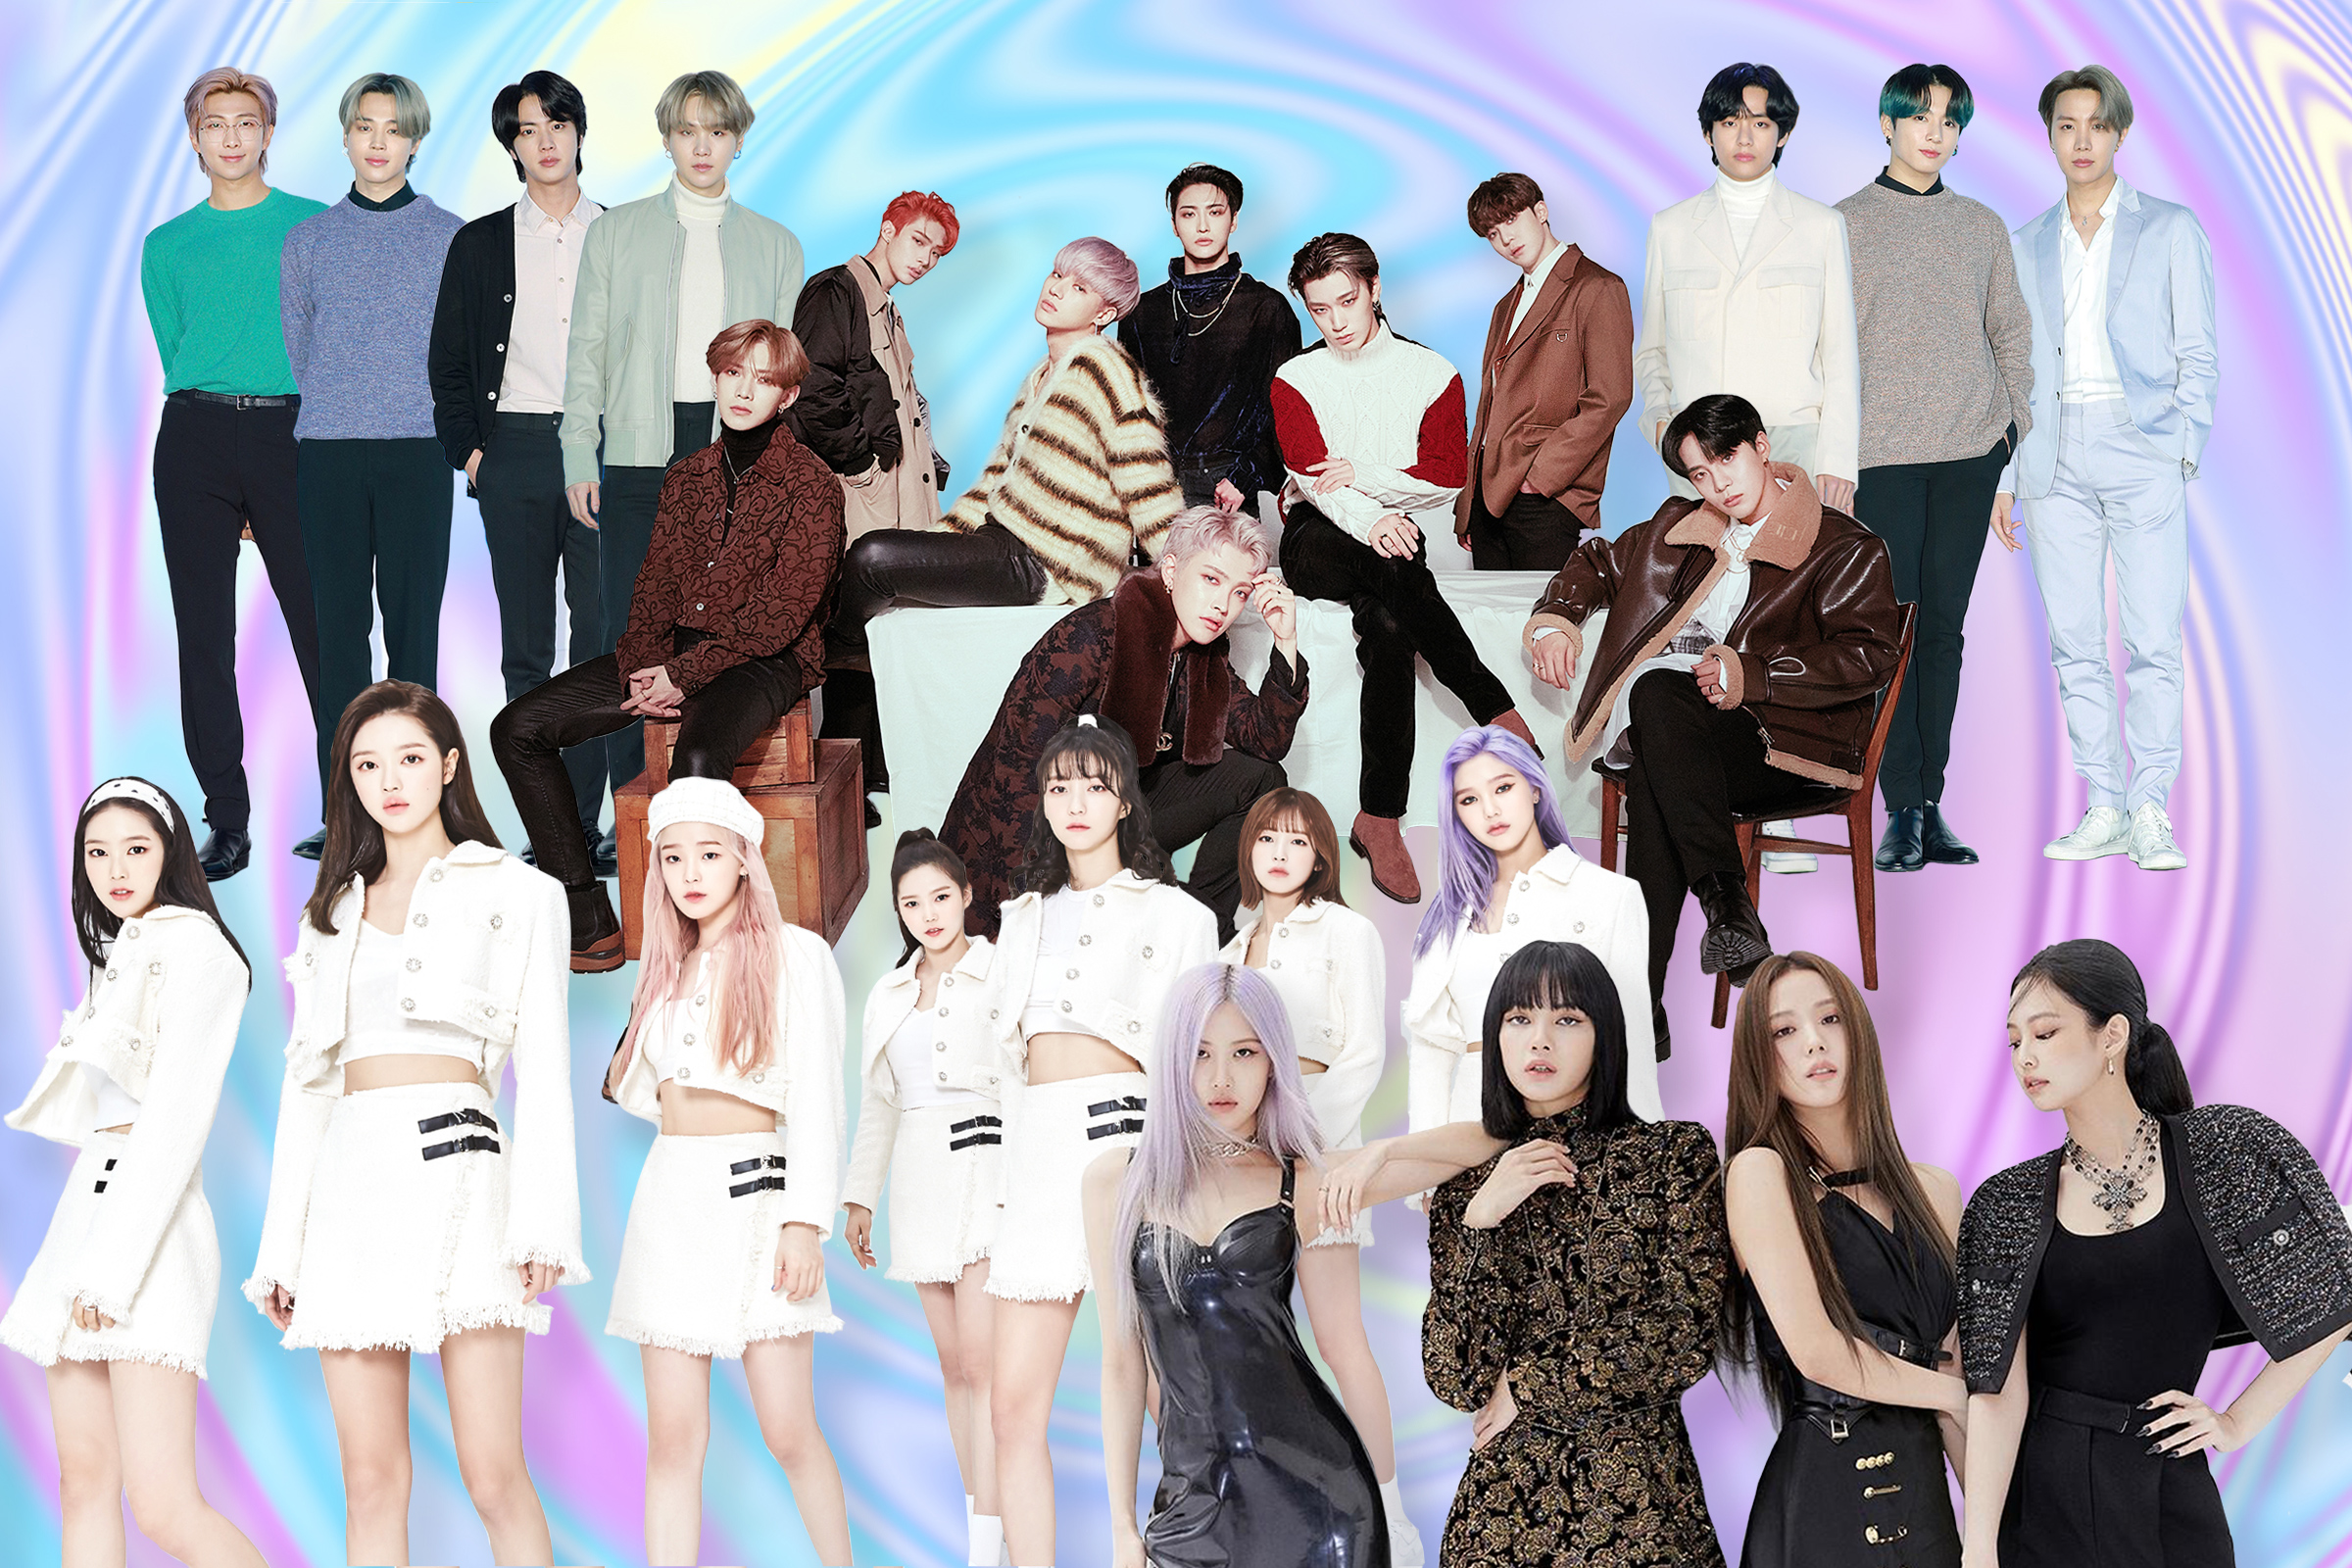 From top: BTS, ATEEZ, Oh My Girl, and Blackpink